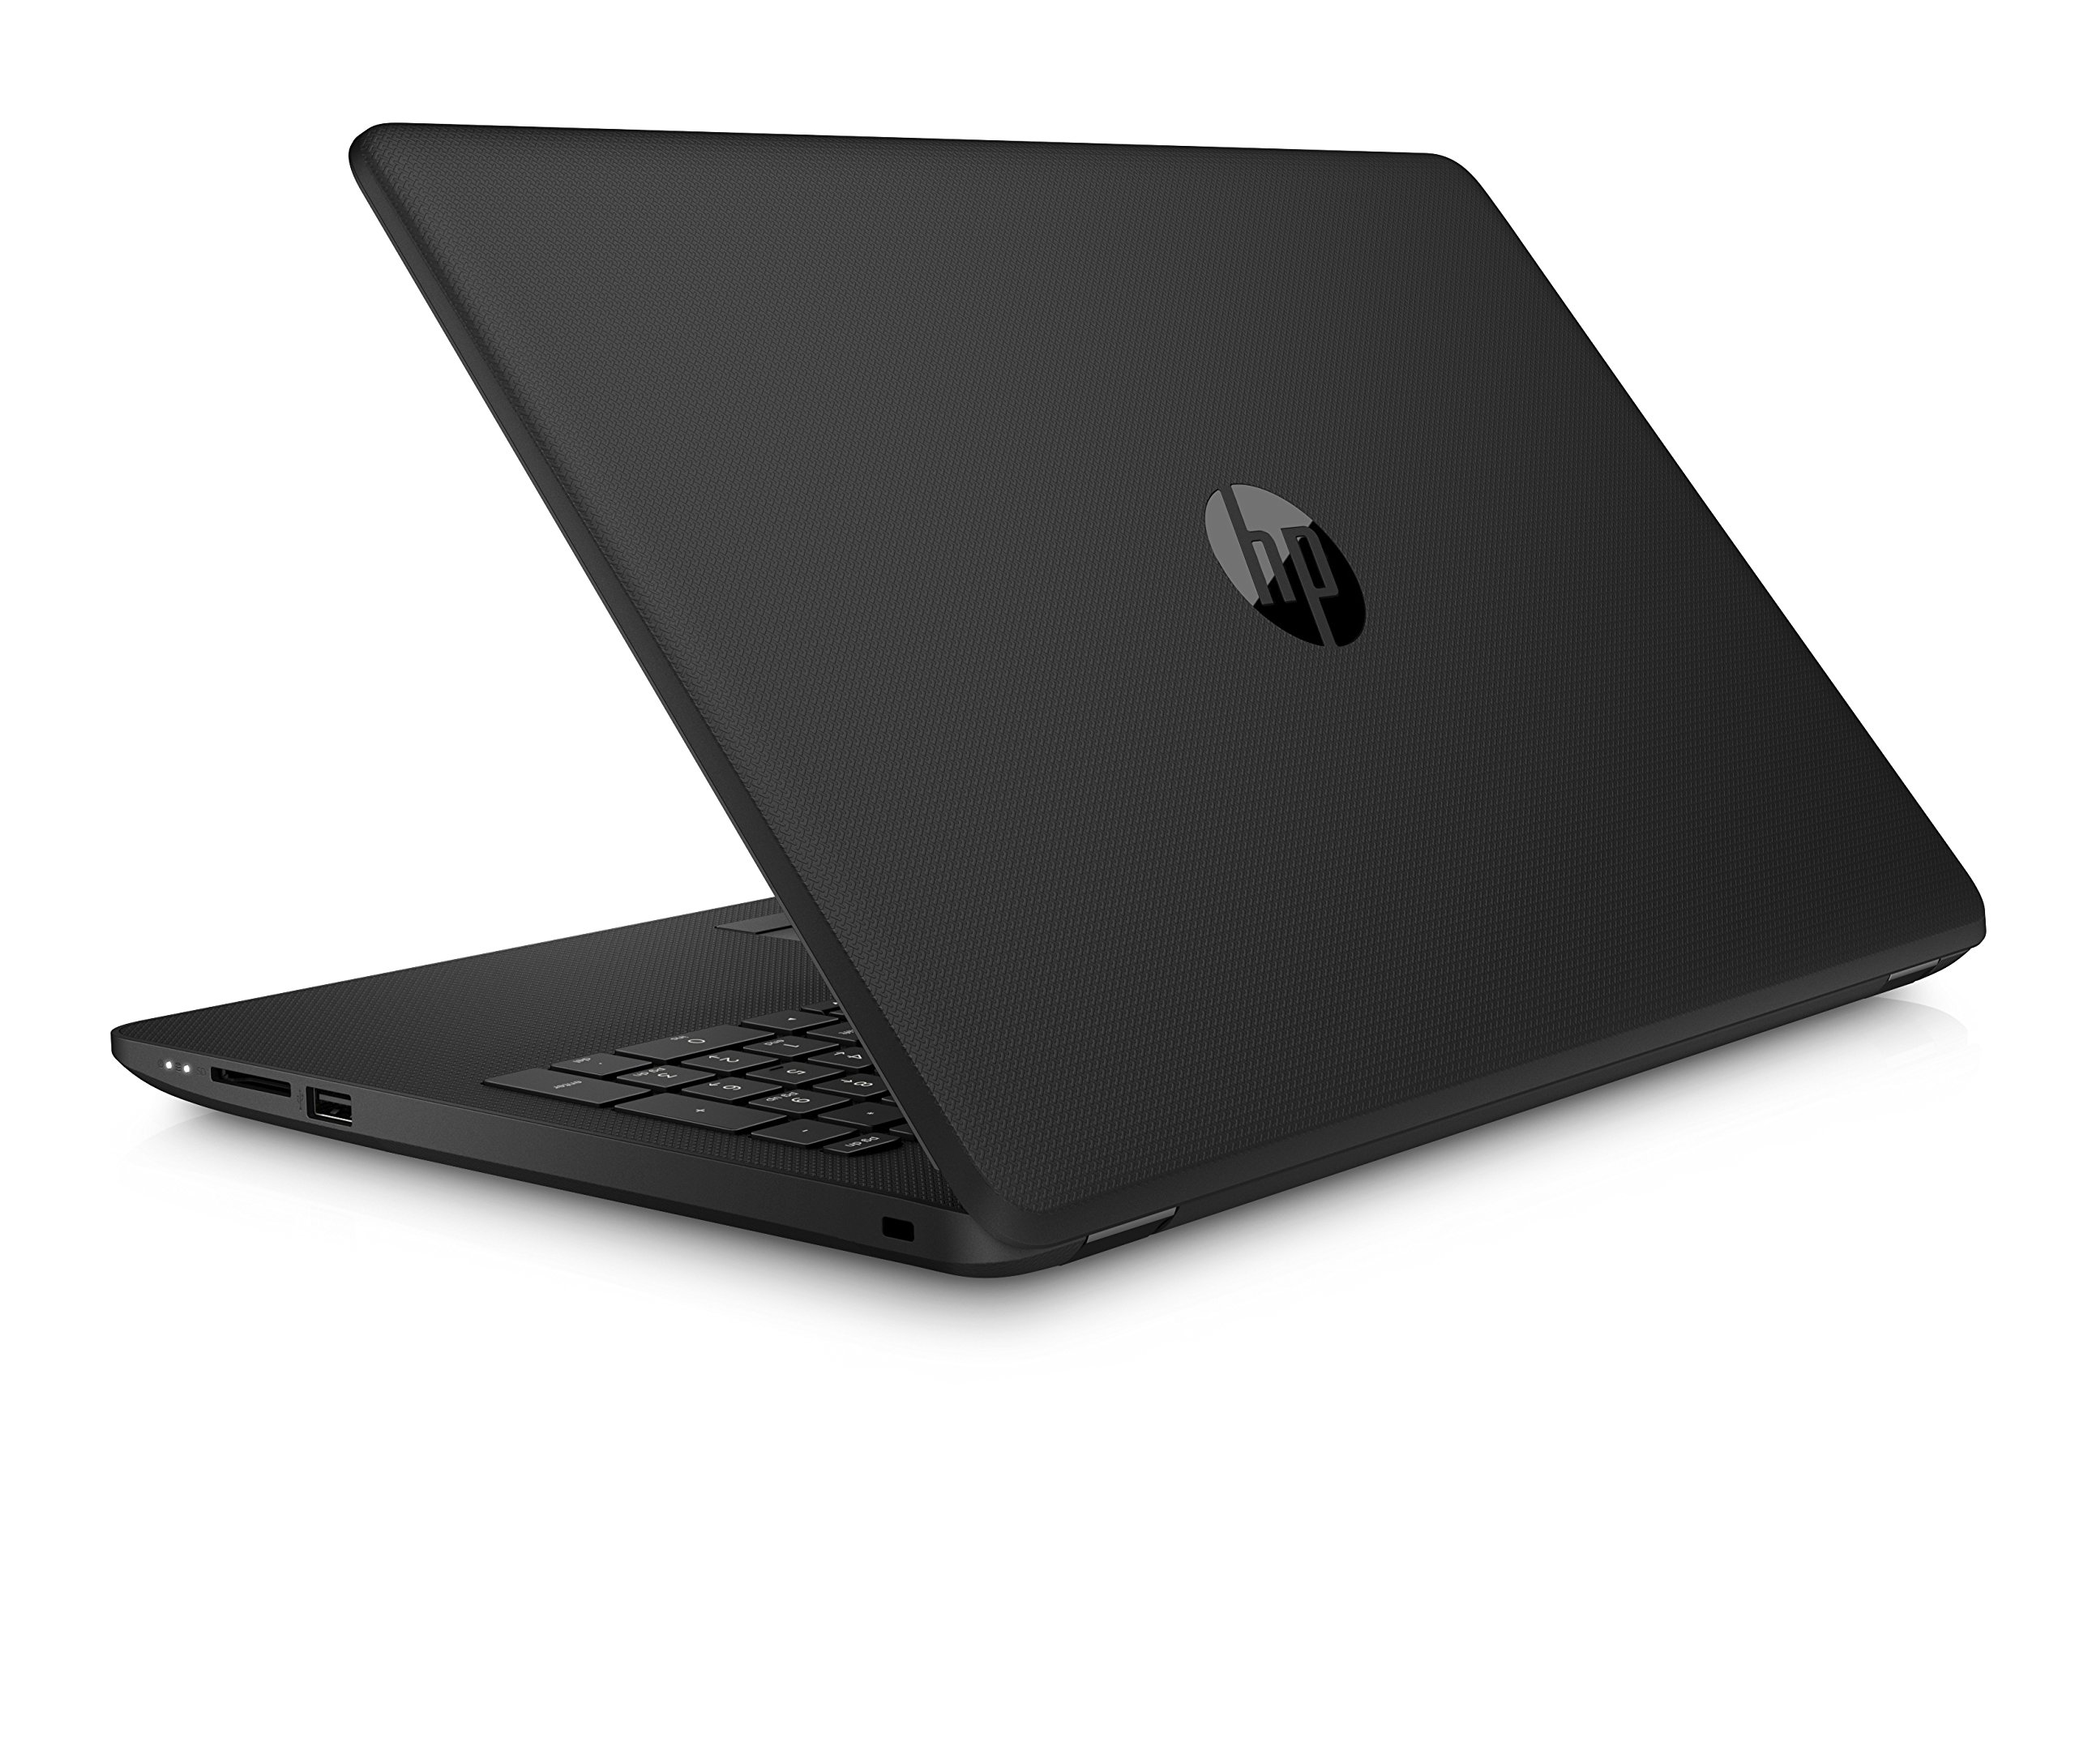 HP 2019 Premium Pavilion 15.6 Inch Touchscreen Laptop (Intel Pentium 4-Core N5000 1.10 GHz, up to 2.70 GHz Turbo, 4GB/8GB/16GB RAM, 128GB to 1TB SSD, 500GB to 2TB HDD, WiFi, Bluetooth, Windows 10) by HP (Image #3)